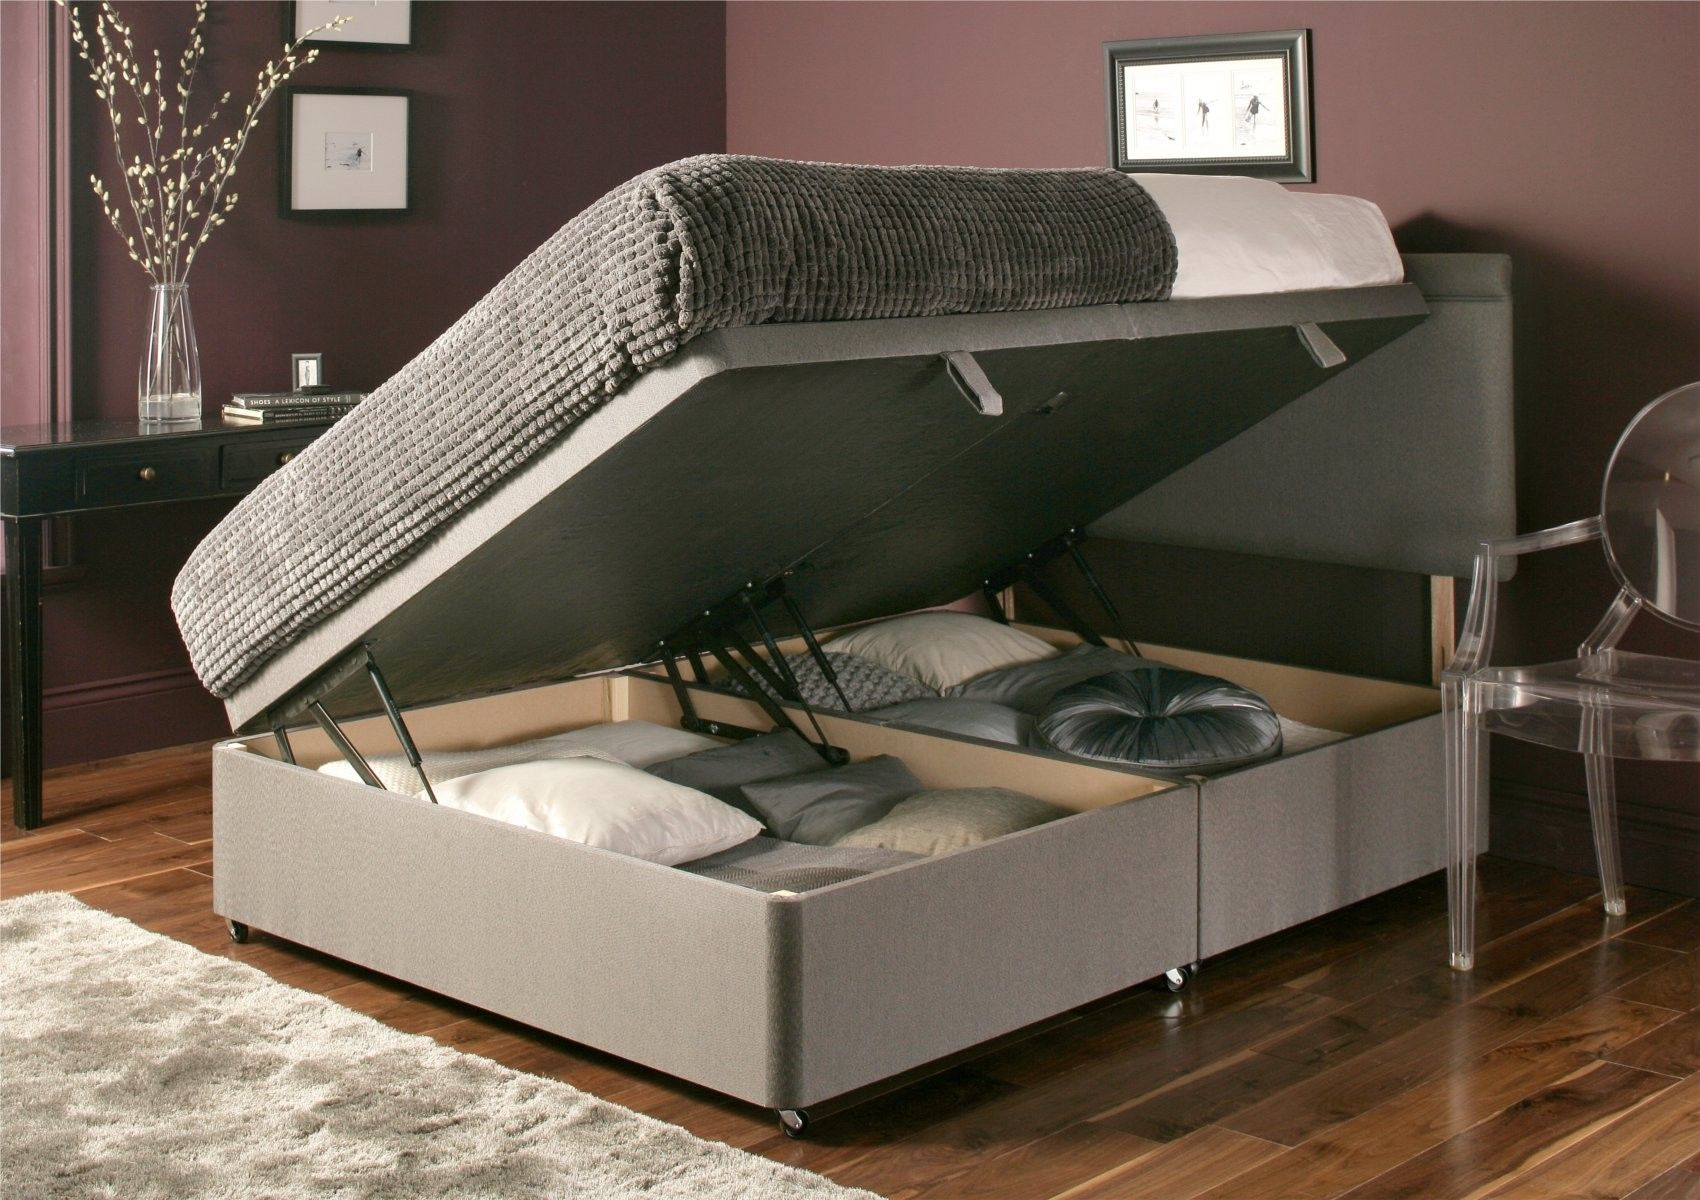 Sweet Fold Over Bed Great Storage Under Kingsize Ottoman Bedroom